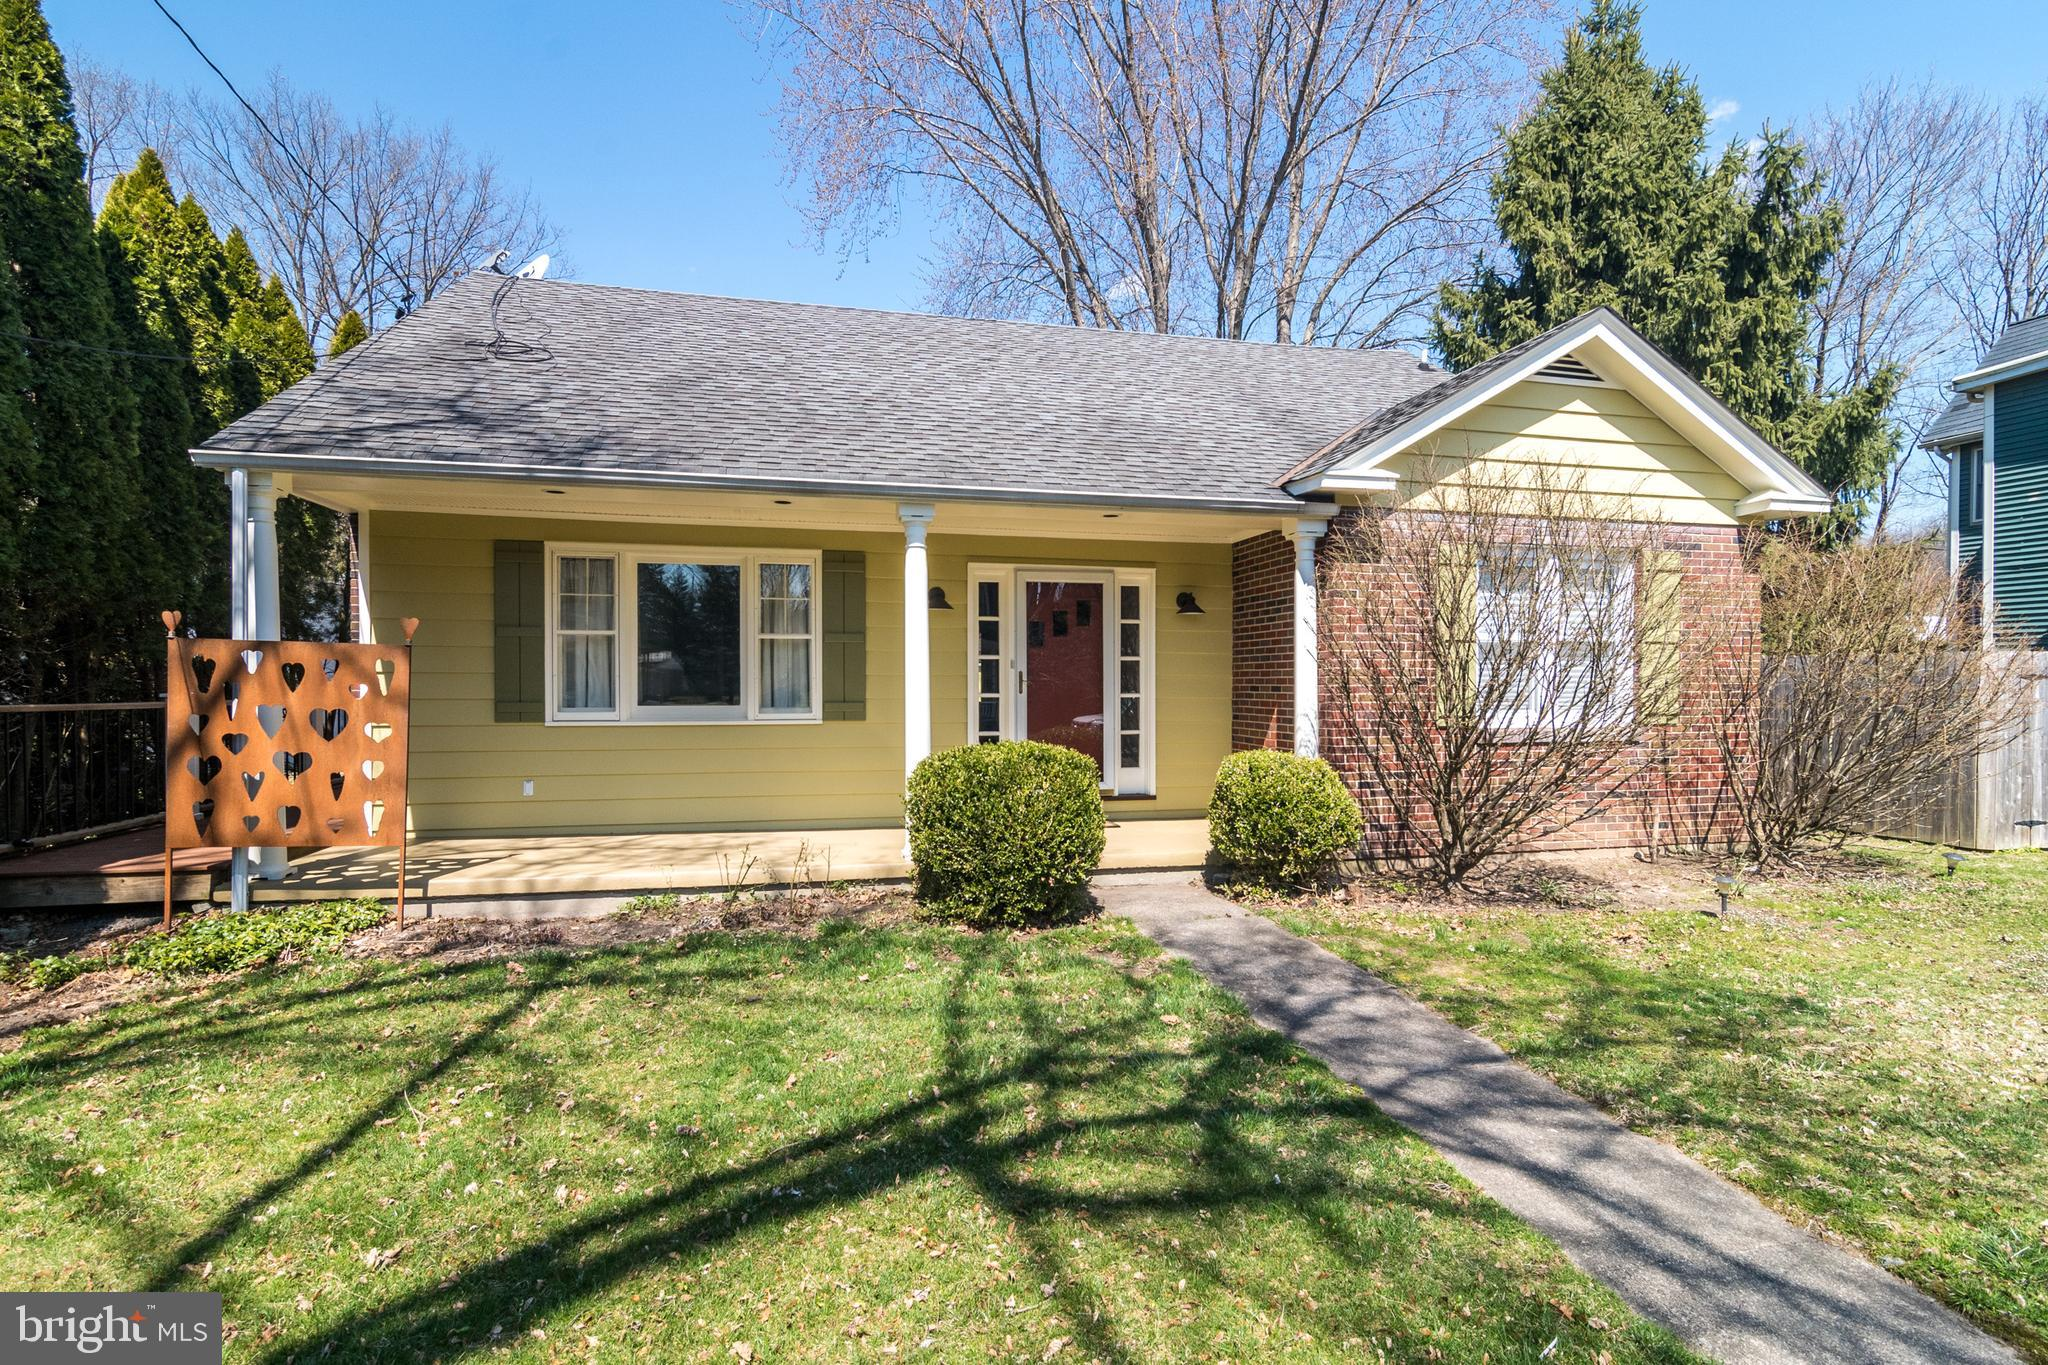 133 SPRUCE ROAD, RIEGELSVILLE, PA 18077